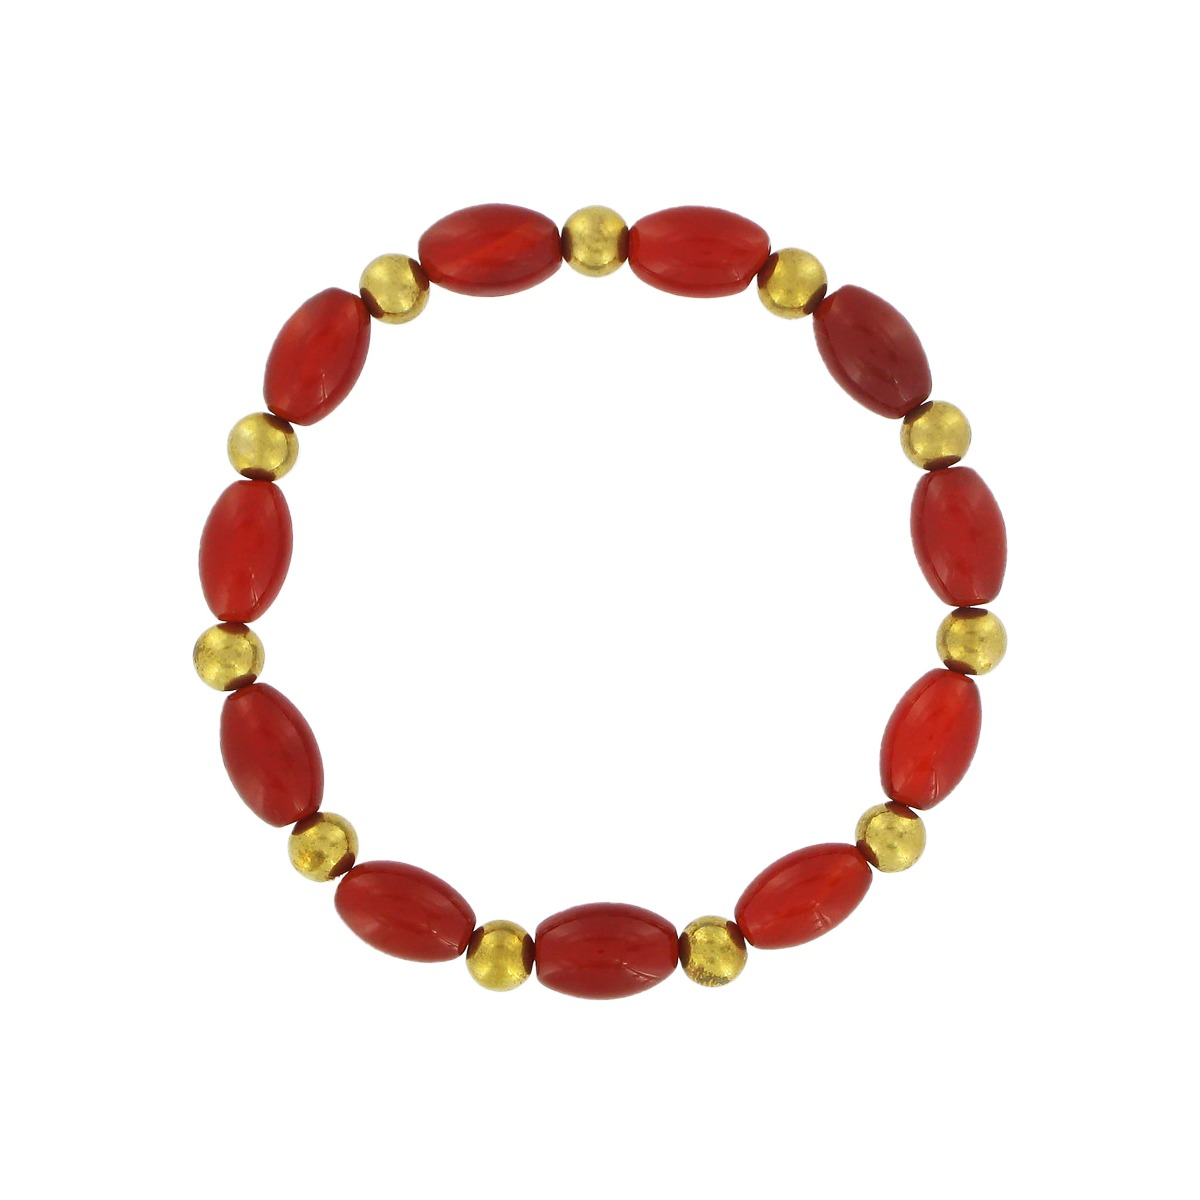 Red agate bead bracelet